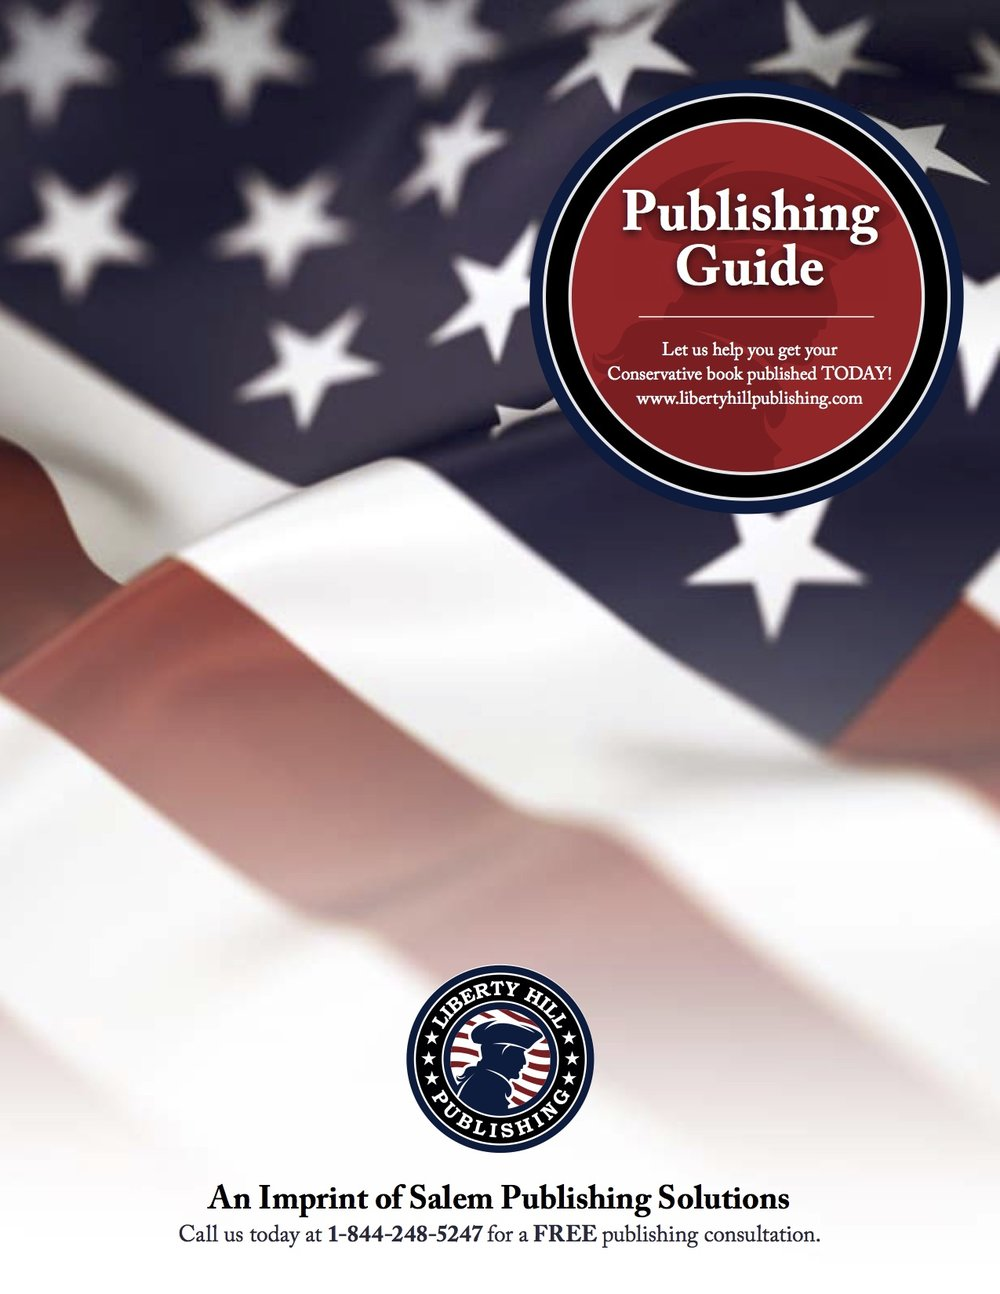 Liberty Hill Publishing Guide